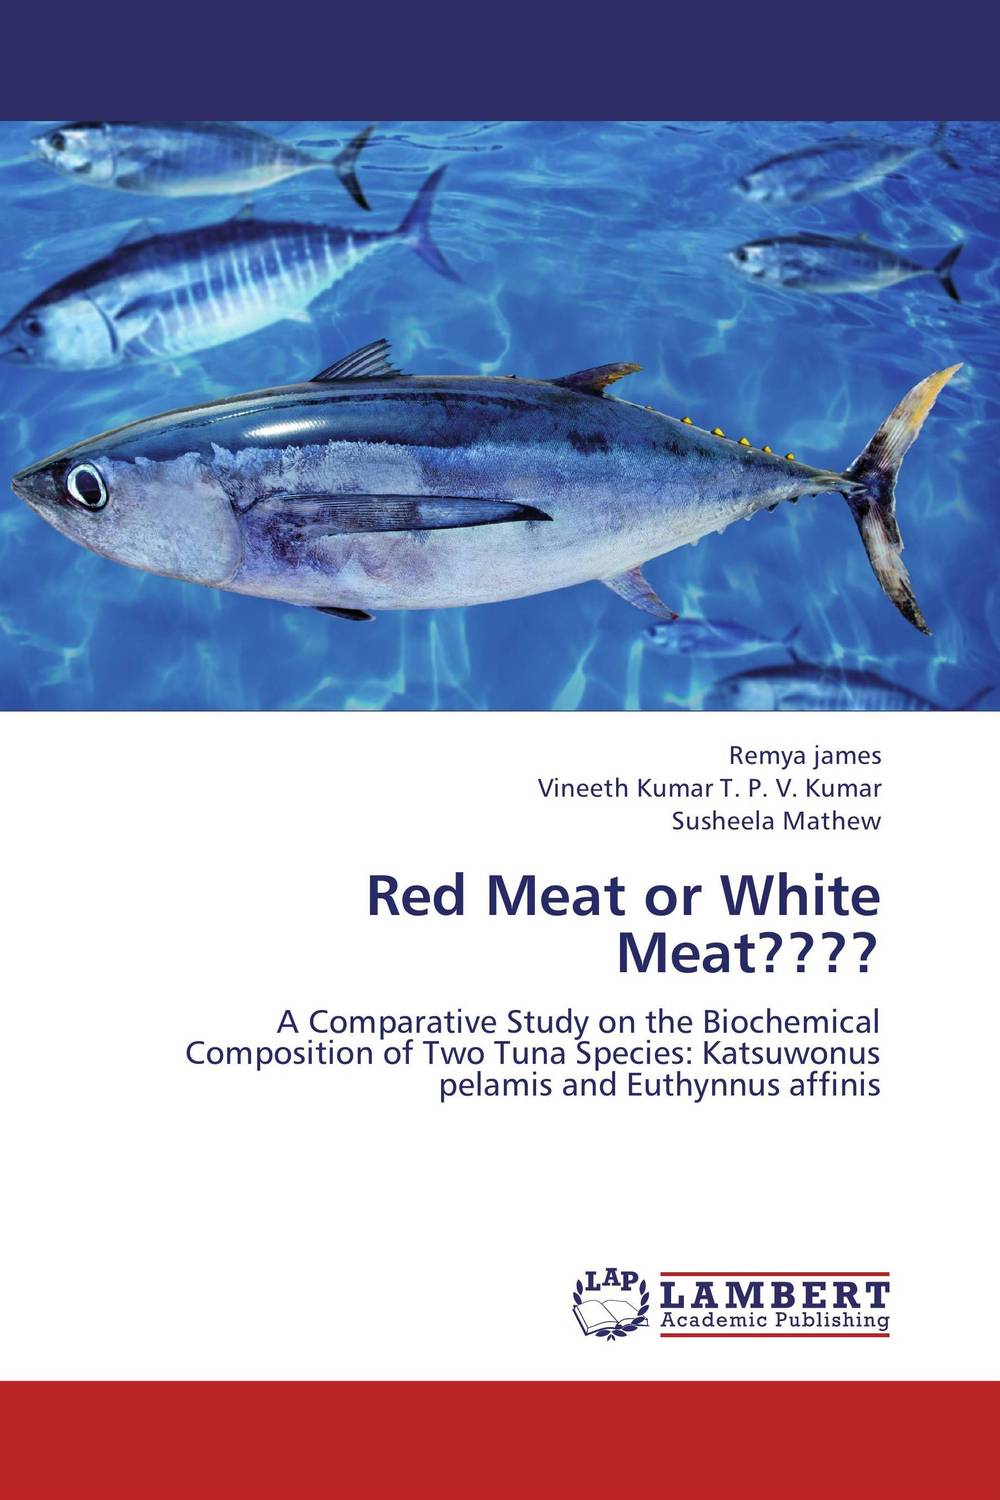 Red Meat or White Meat???? diet selection using the nutritive value of forages